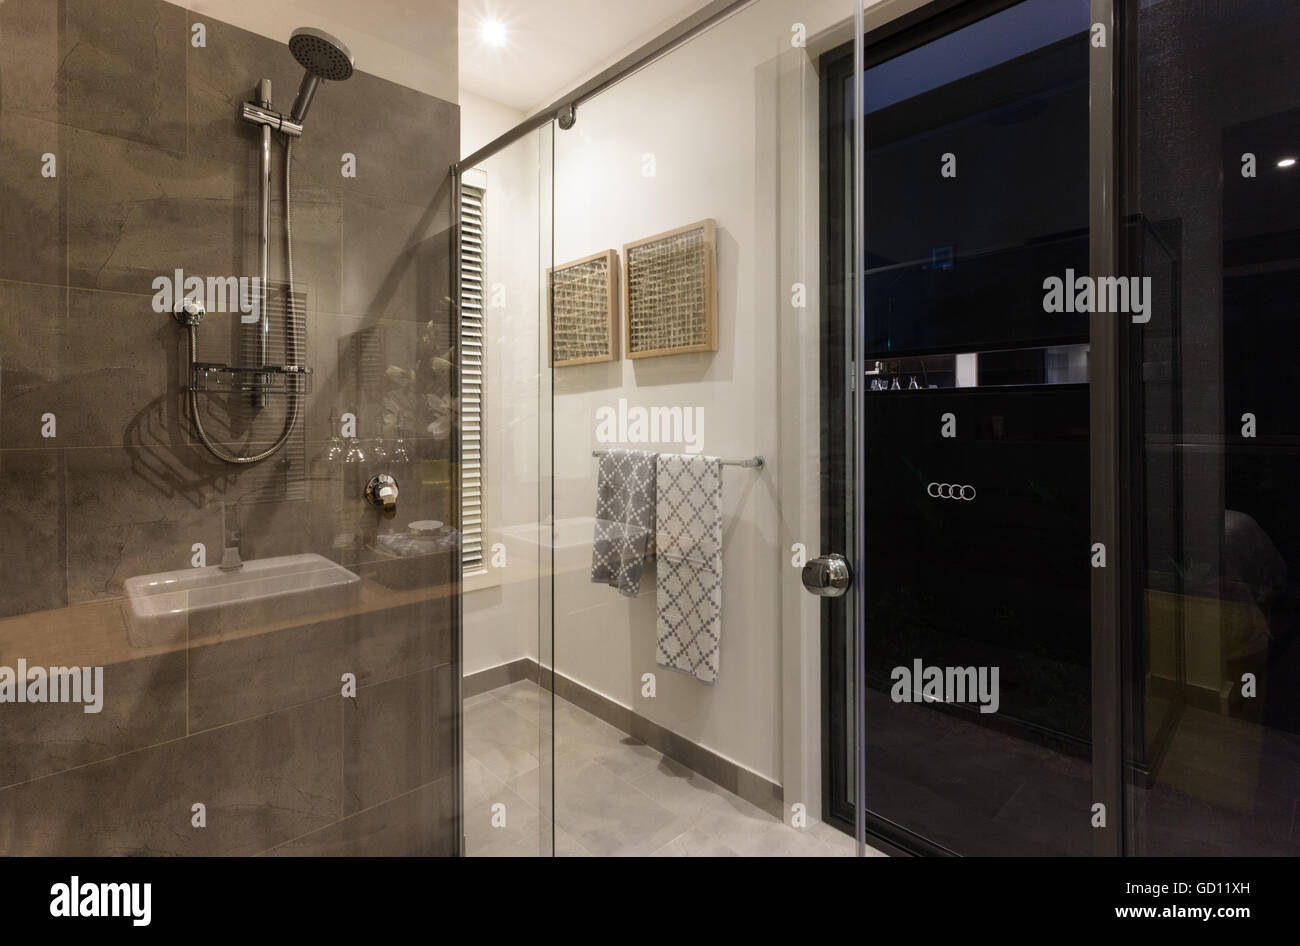 Shower Area Stock Photos & Shower Area Stock Images - Alamy